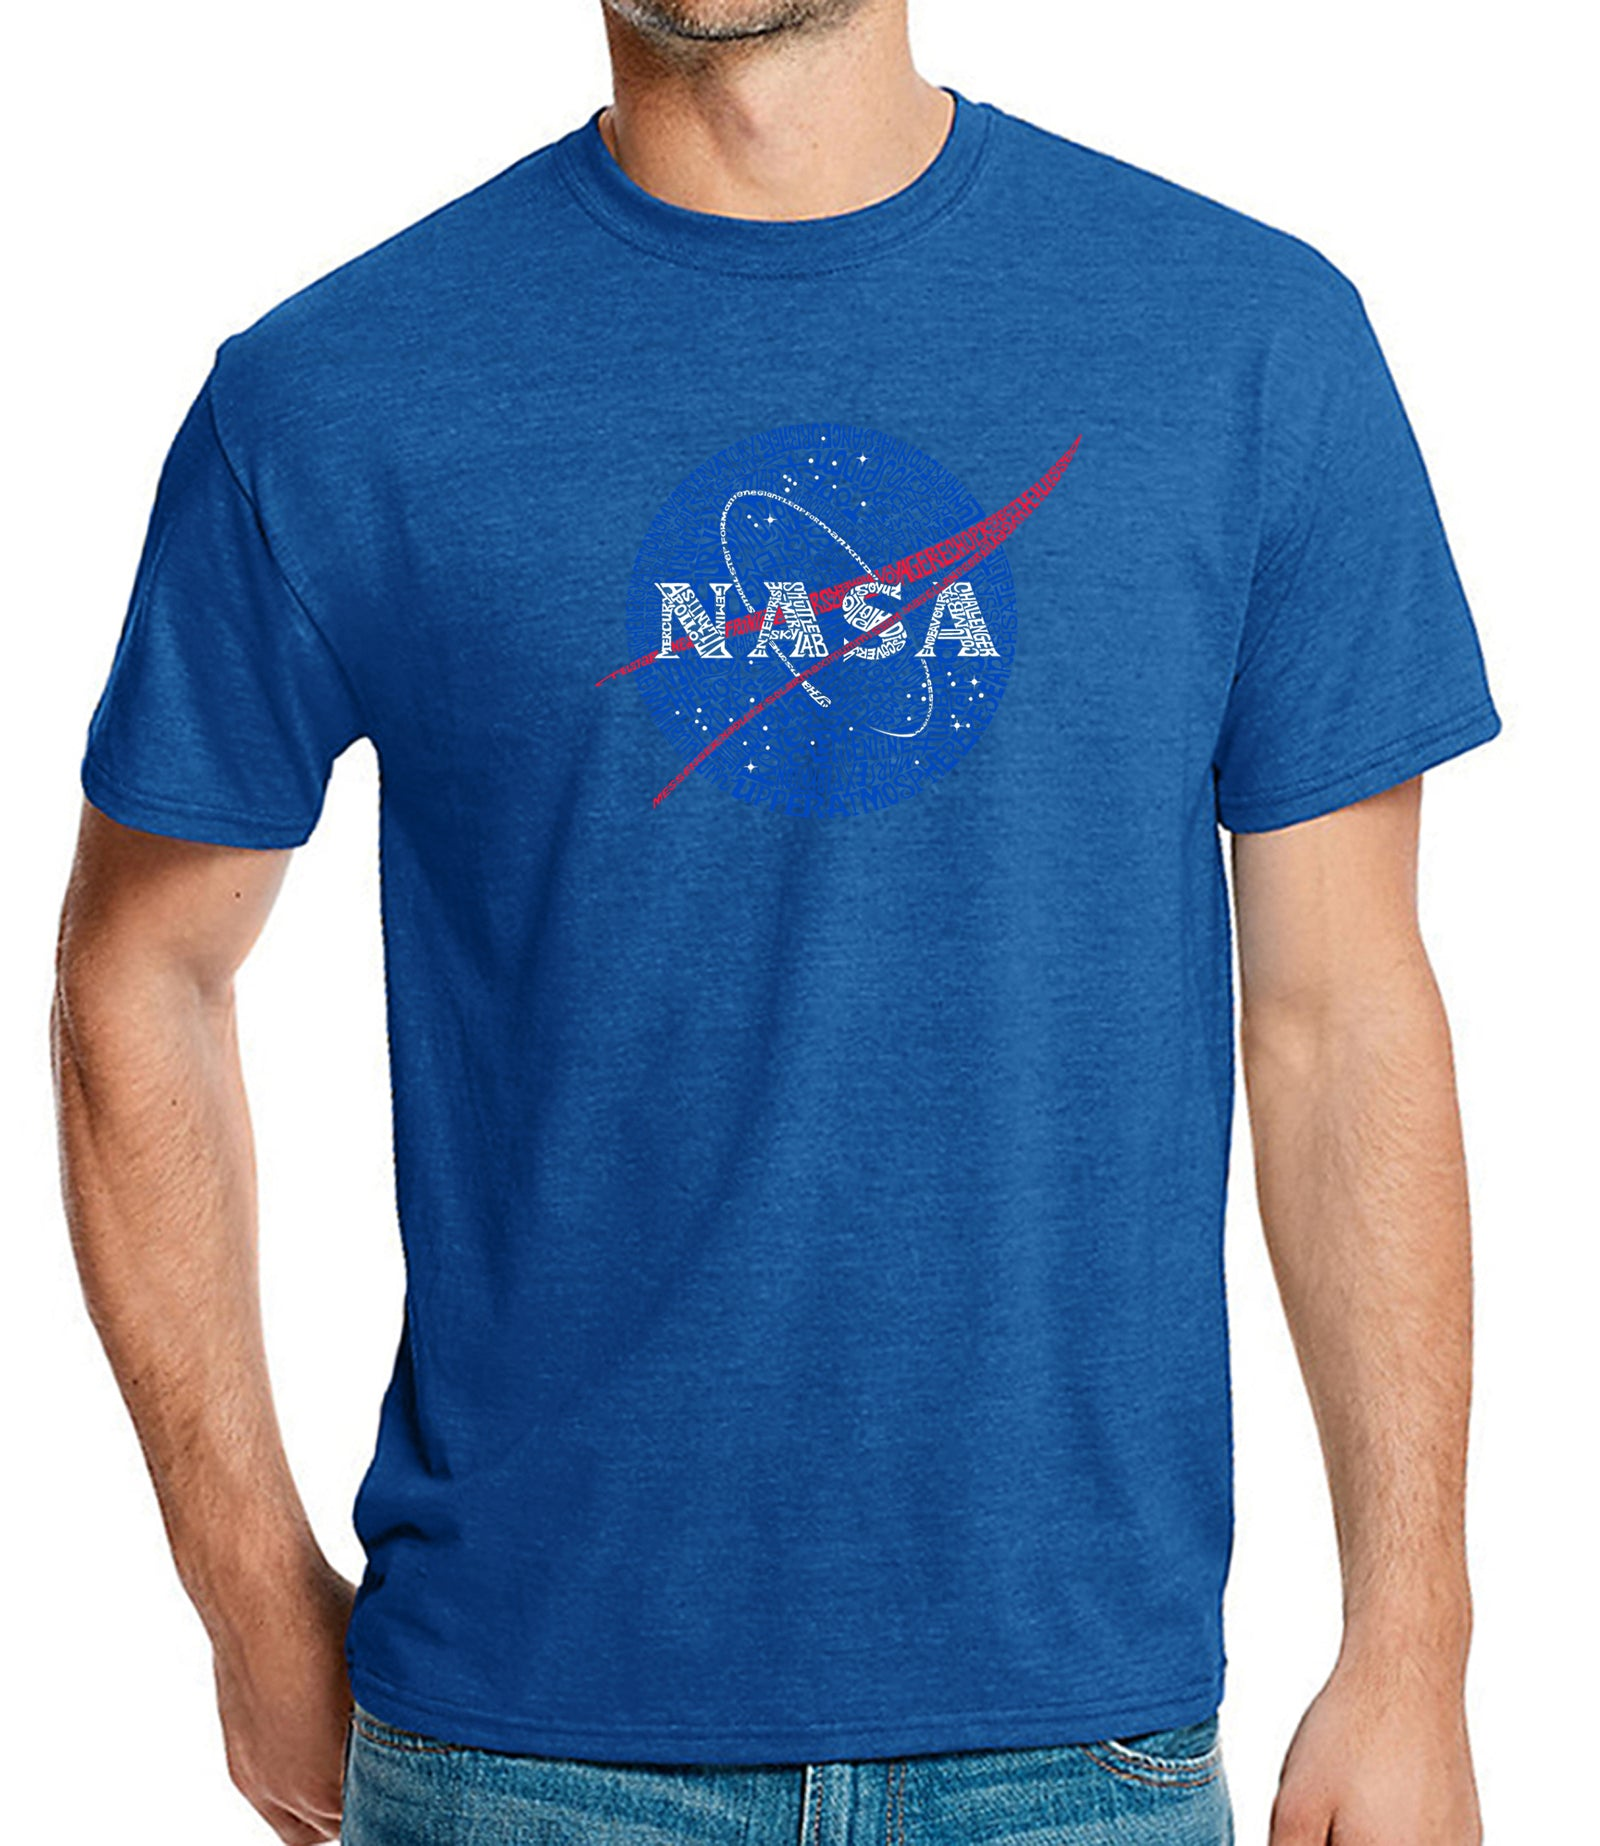 Men's Premium Blend Word Art T-shirt - NASA's Most Notable Missions